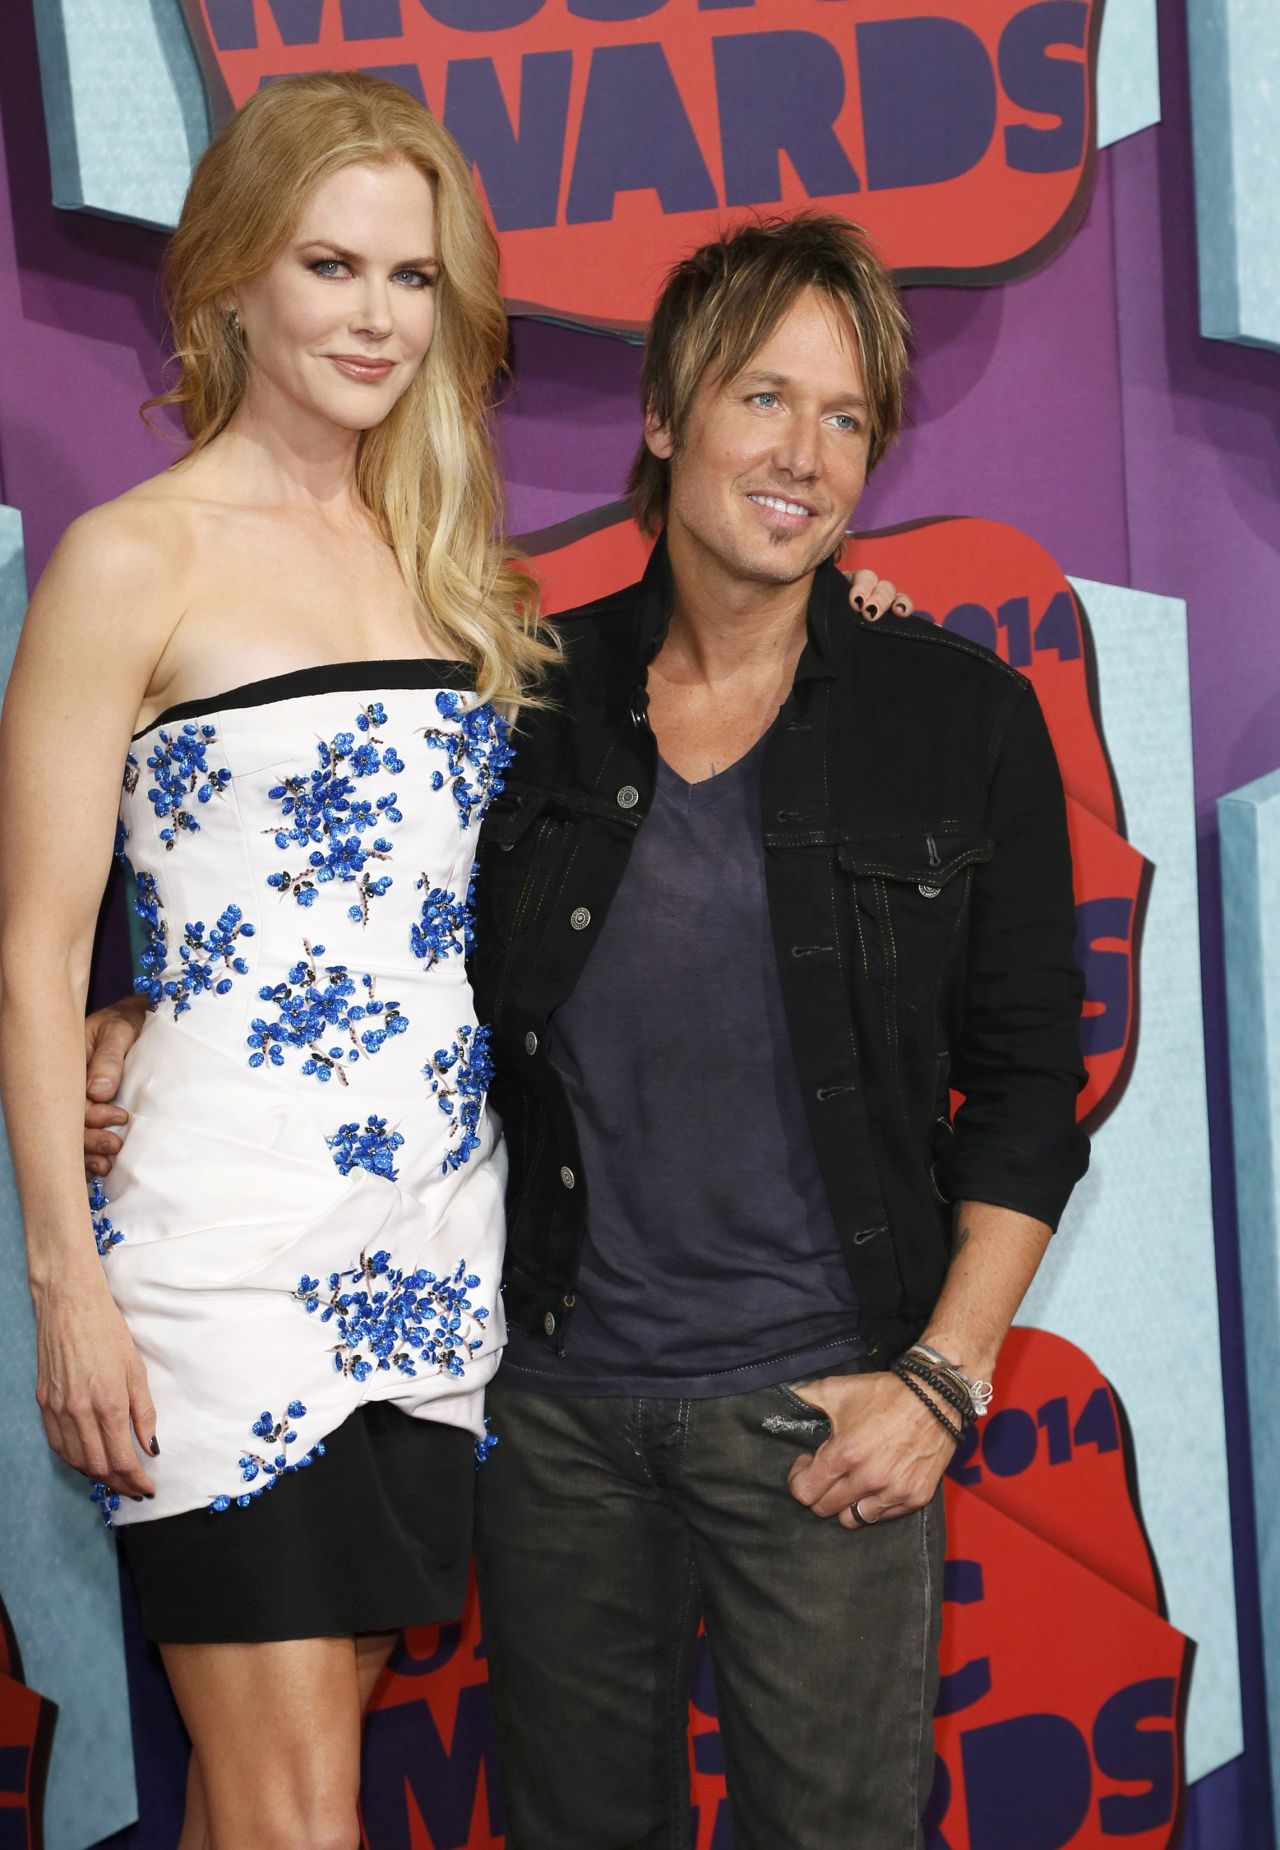 Nicole Kidman and Keith Urban - 2014 CMT Music Awards - June 4, 2014